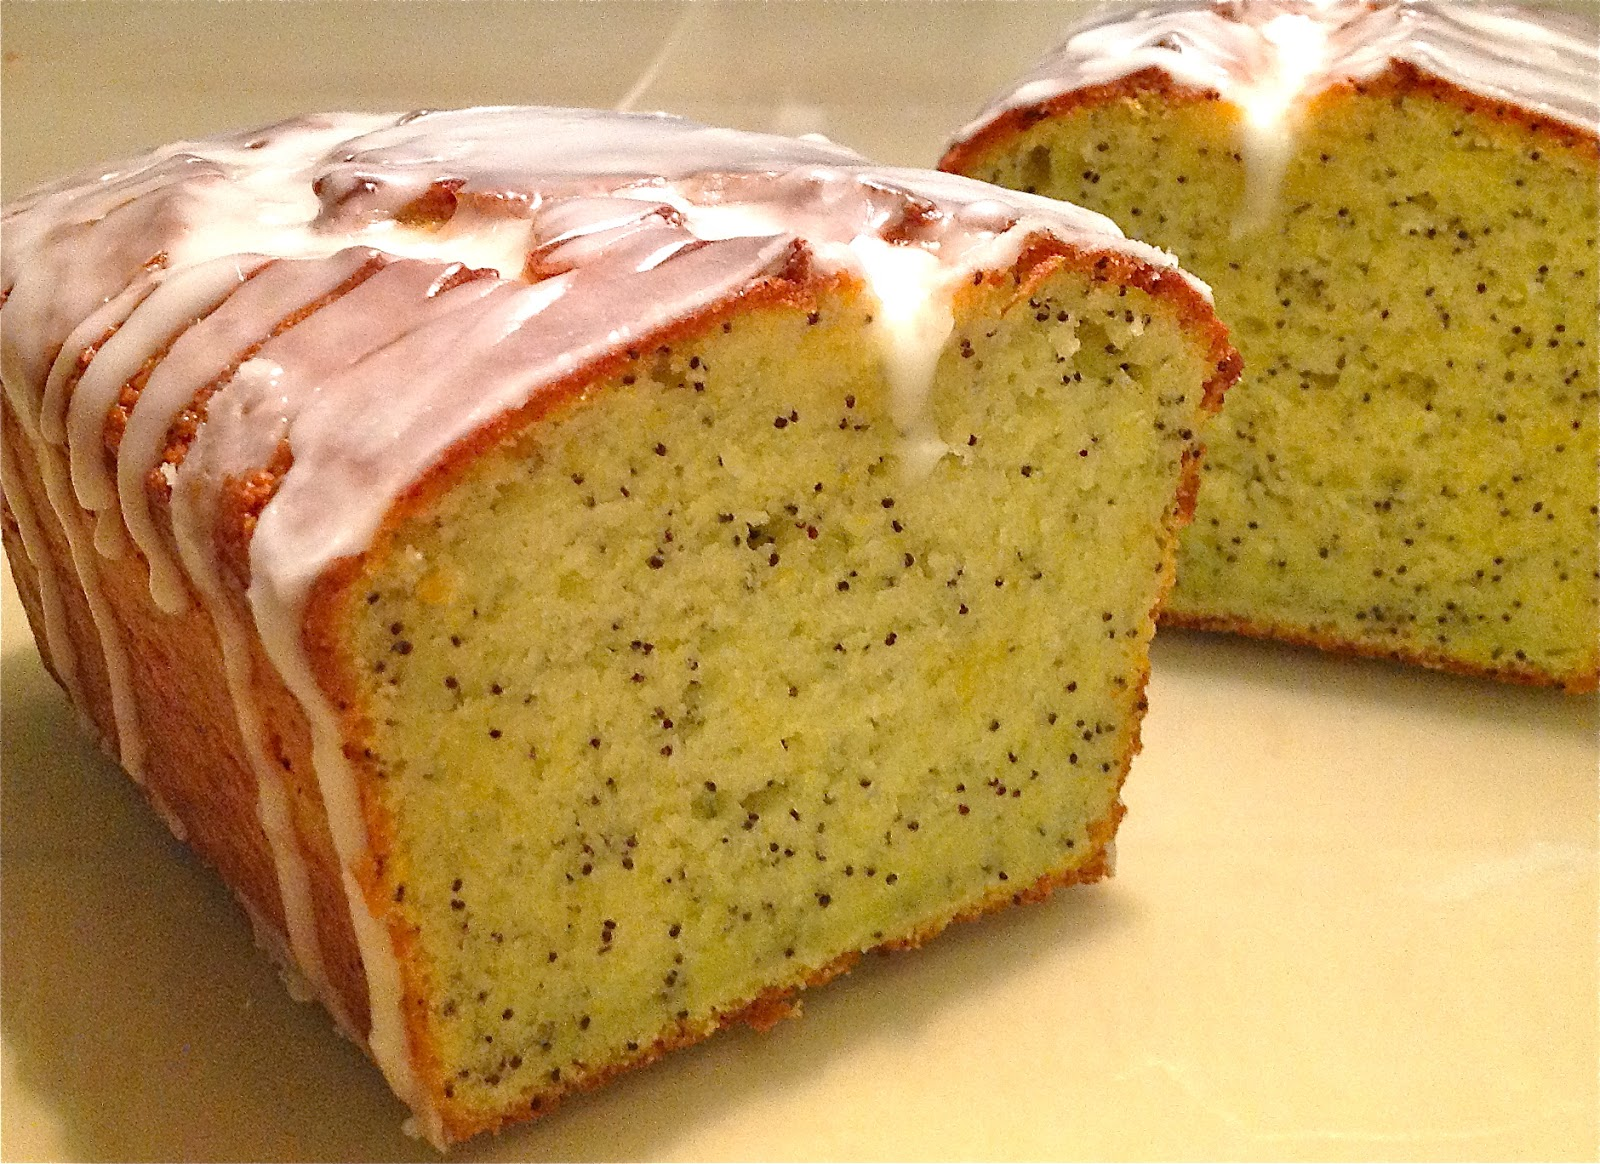 Download image Lemon Poppy Seed Cake PC, Android, iPhone and iPad ...